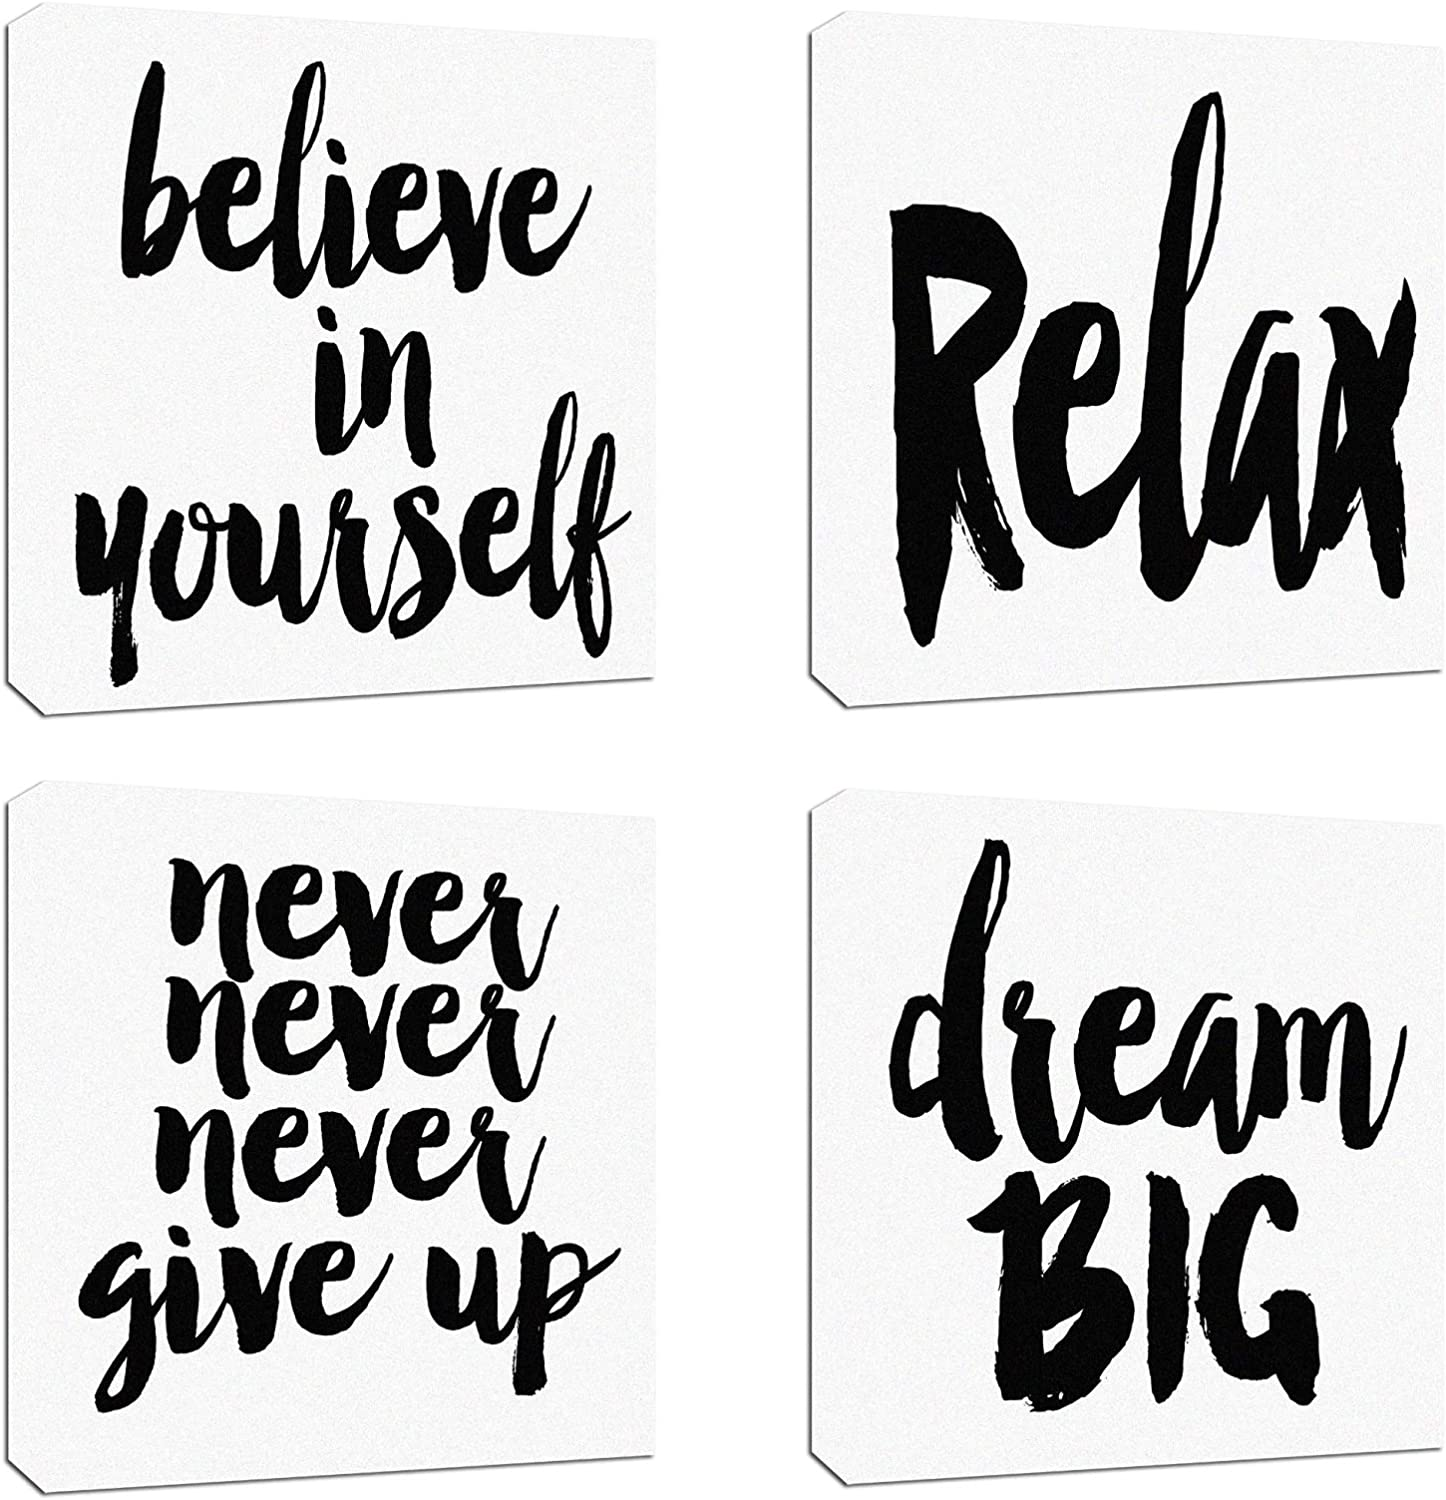 """4Pcs x Canvas Wood Stretched Motivational Quotes Letter Words Success Fabric Print Framed Combine Modern Landscape Abstract Art For Home Room Office Wall Print Decor 12x12"""" (30x30cm)(61-64)"""